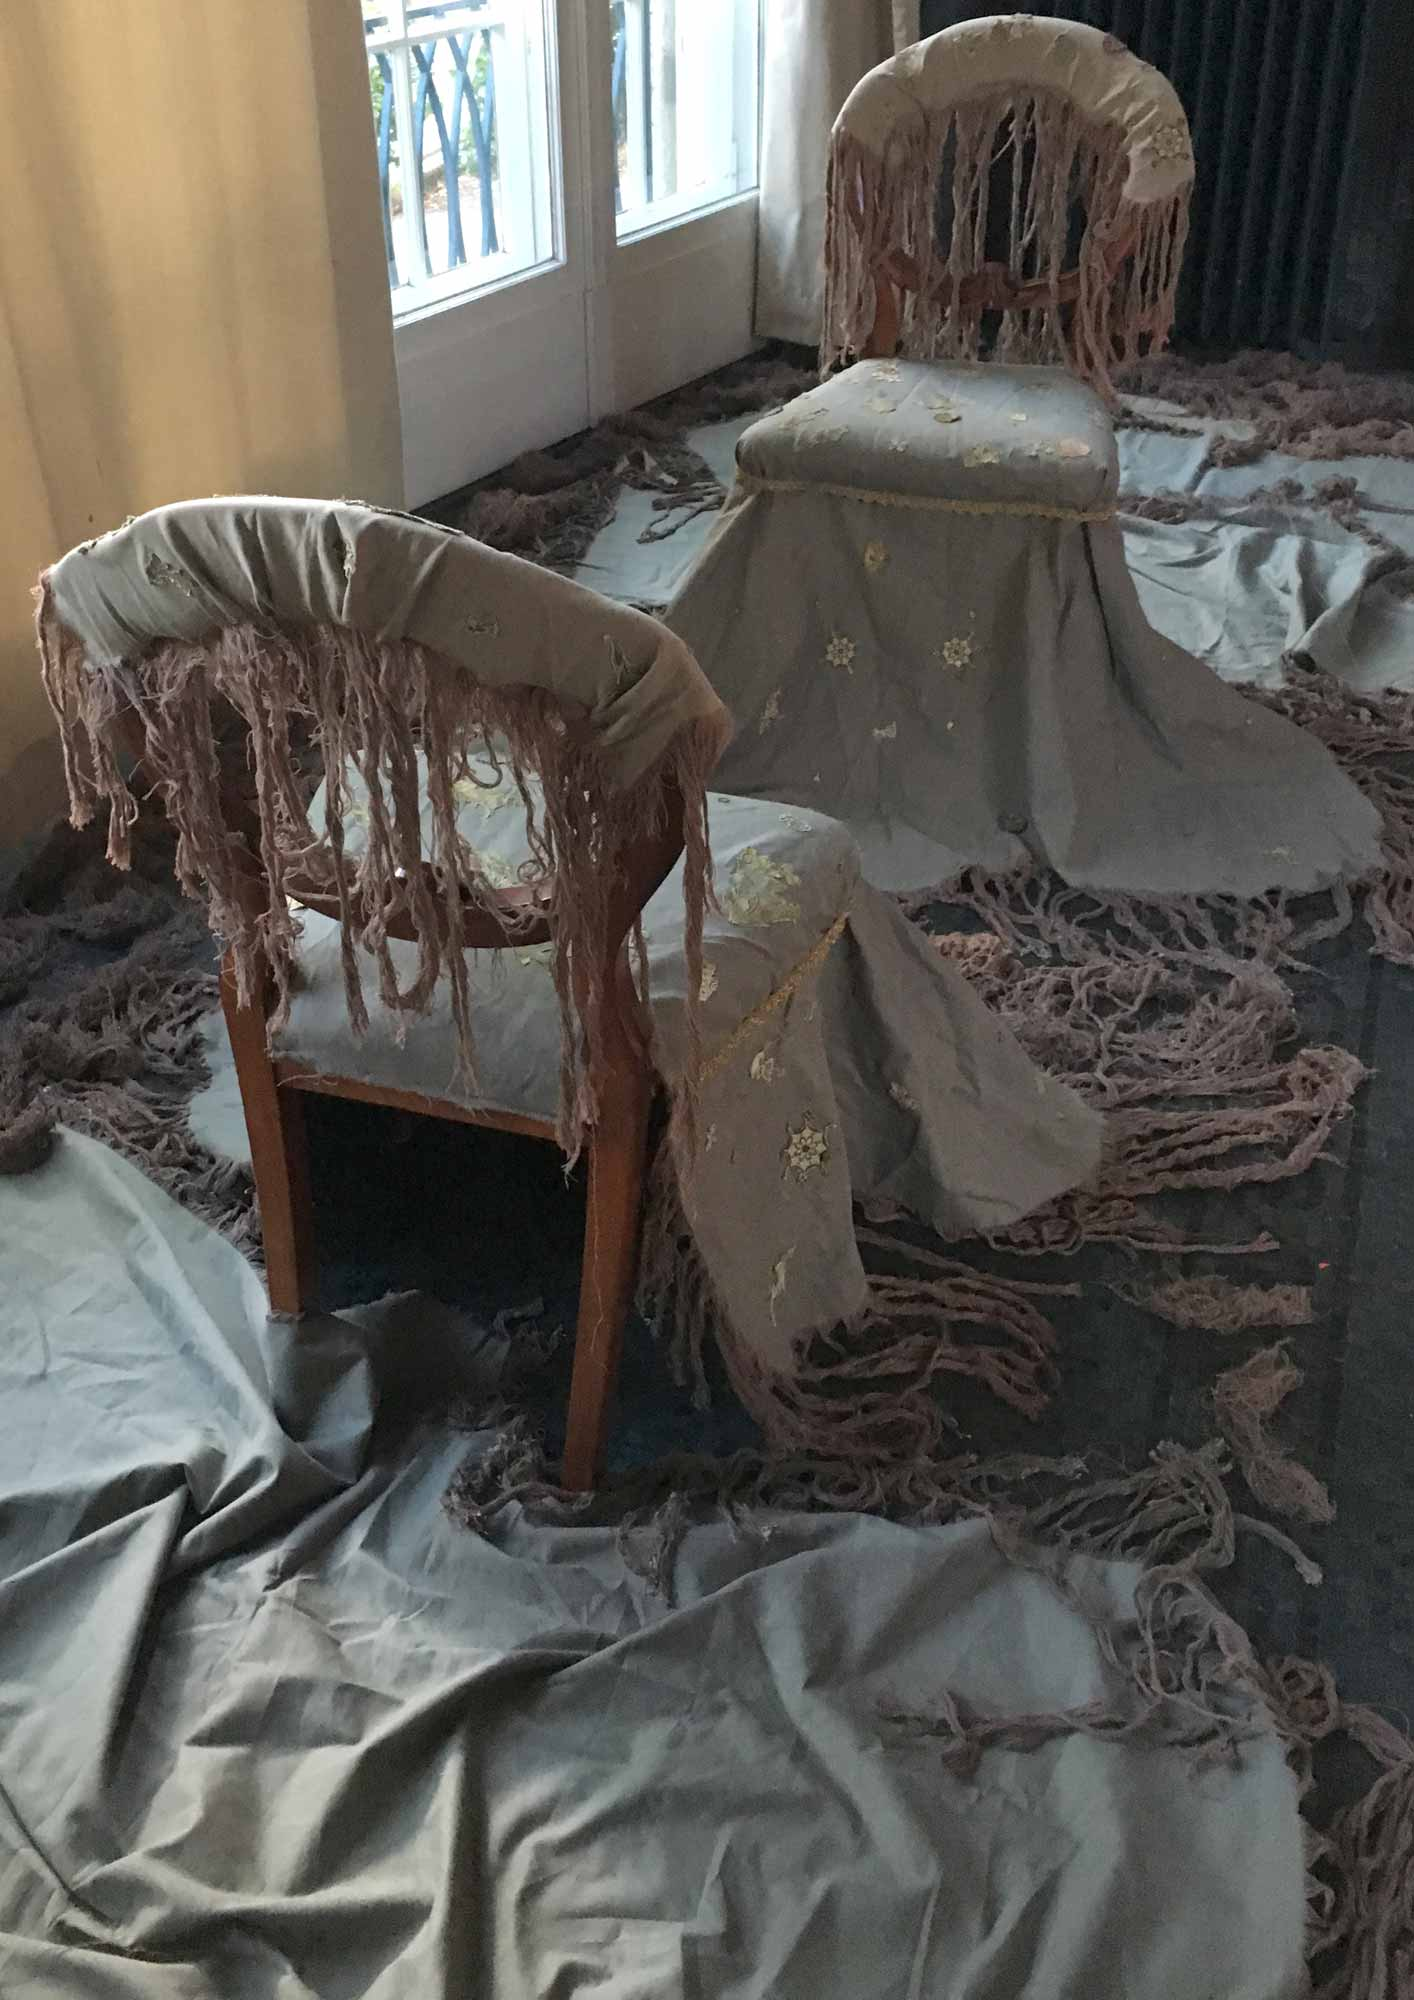 Rula_Ali, Chairing is the Opposite of Sharing, 2016, textile, two chairs